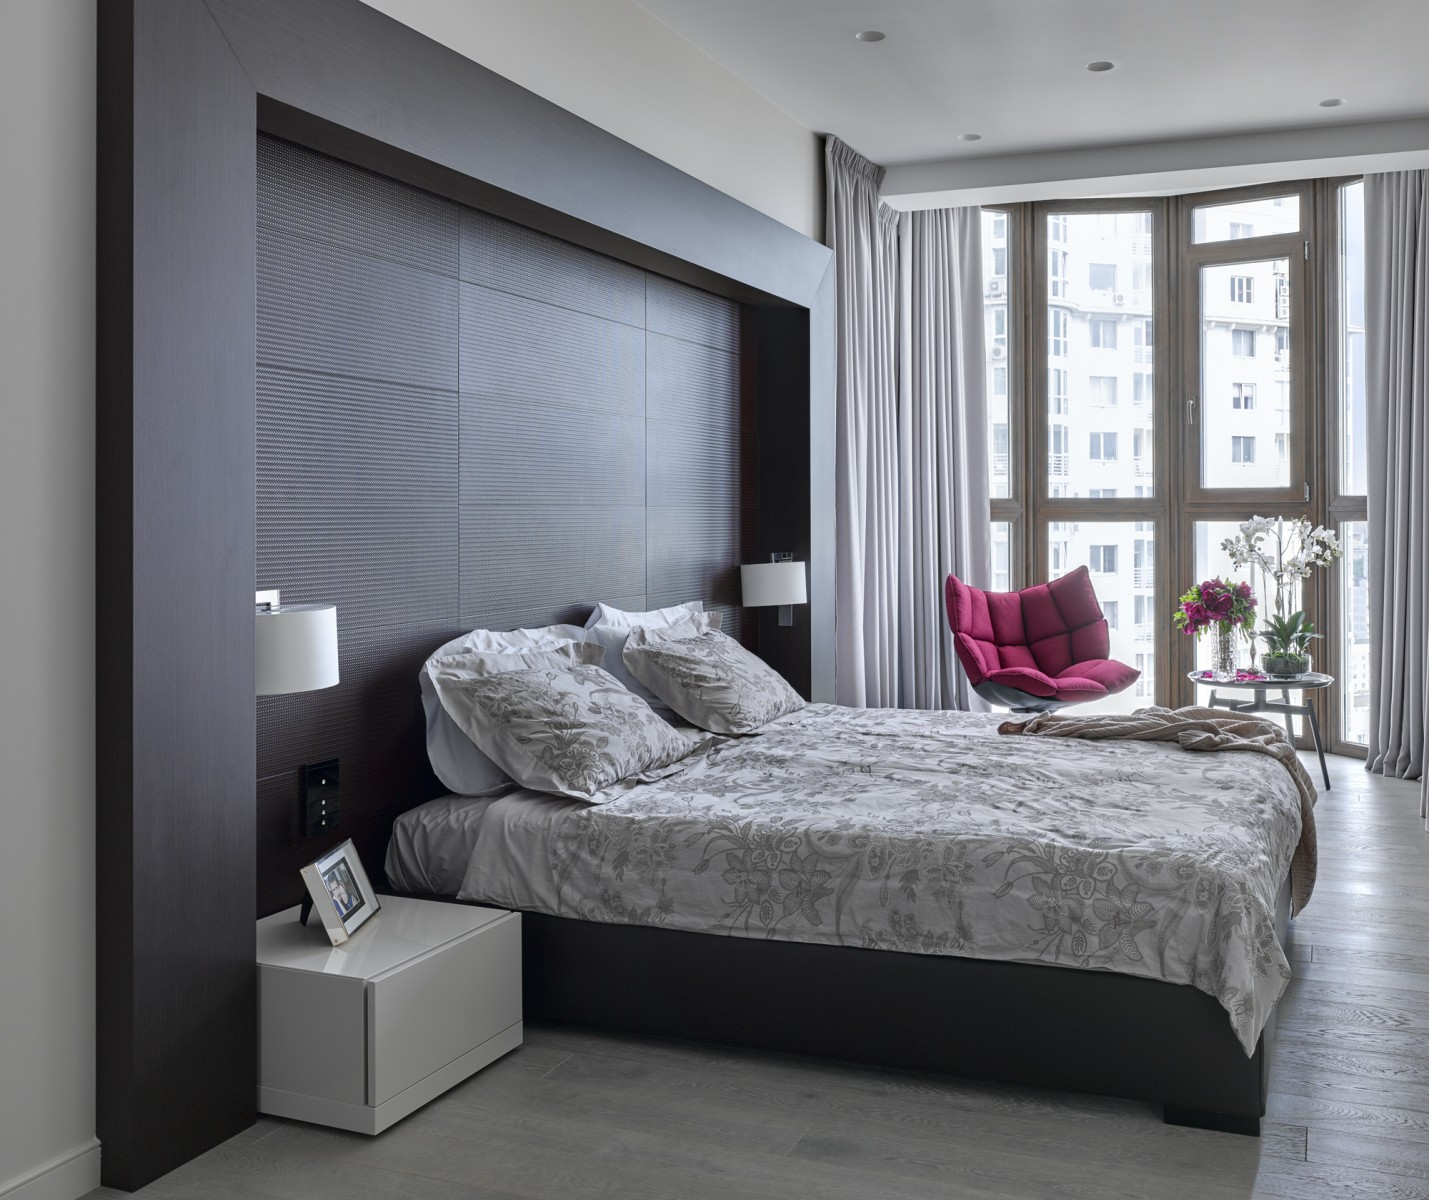 Apartments and Condos Design Projects 2016. nice gray decoration of the headboard wall with the ledge in the ultramodern bedroom